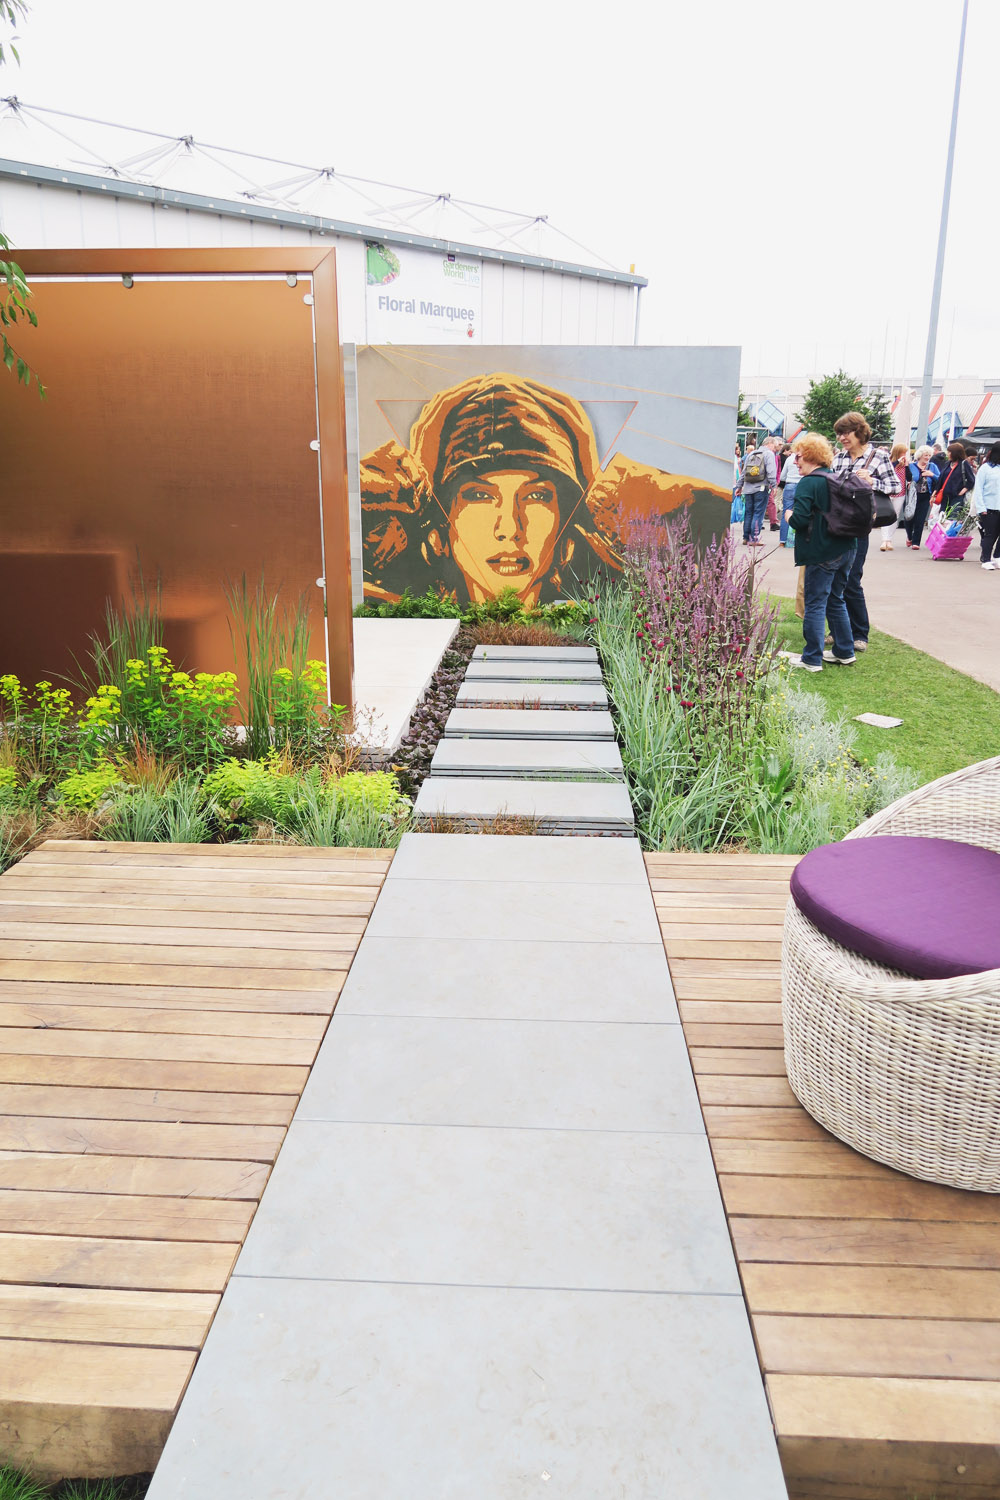 Gardeners World Live 2016 Show Gardens - The Man Garden